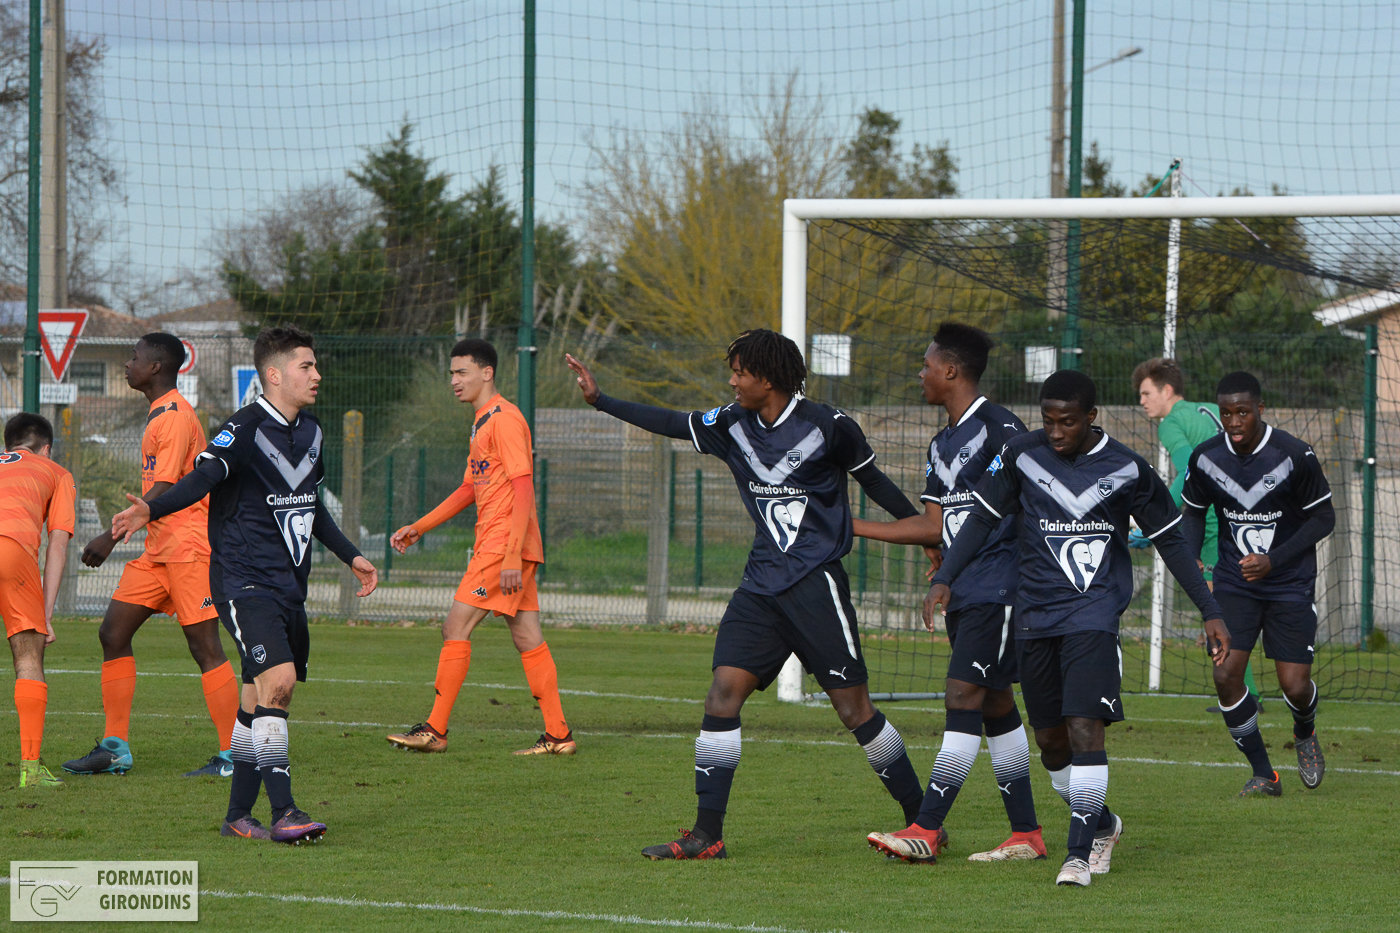 Cfa Girondins : Nouvelle victoire au Mans (2-4) - Formation Girondins